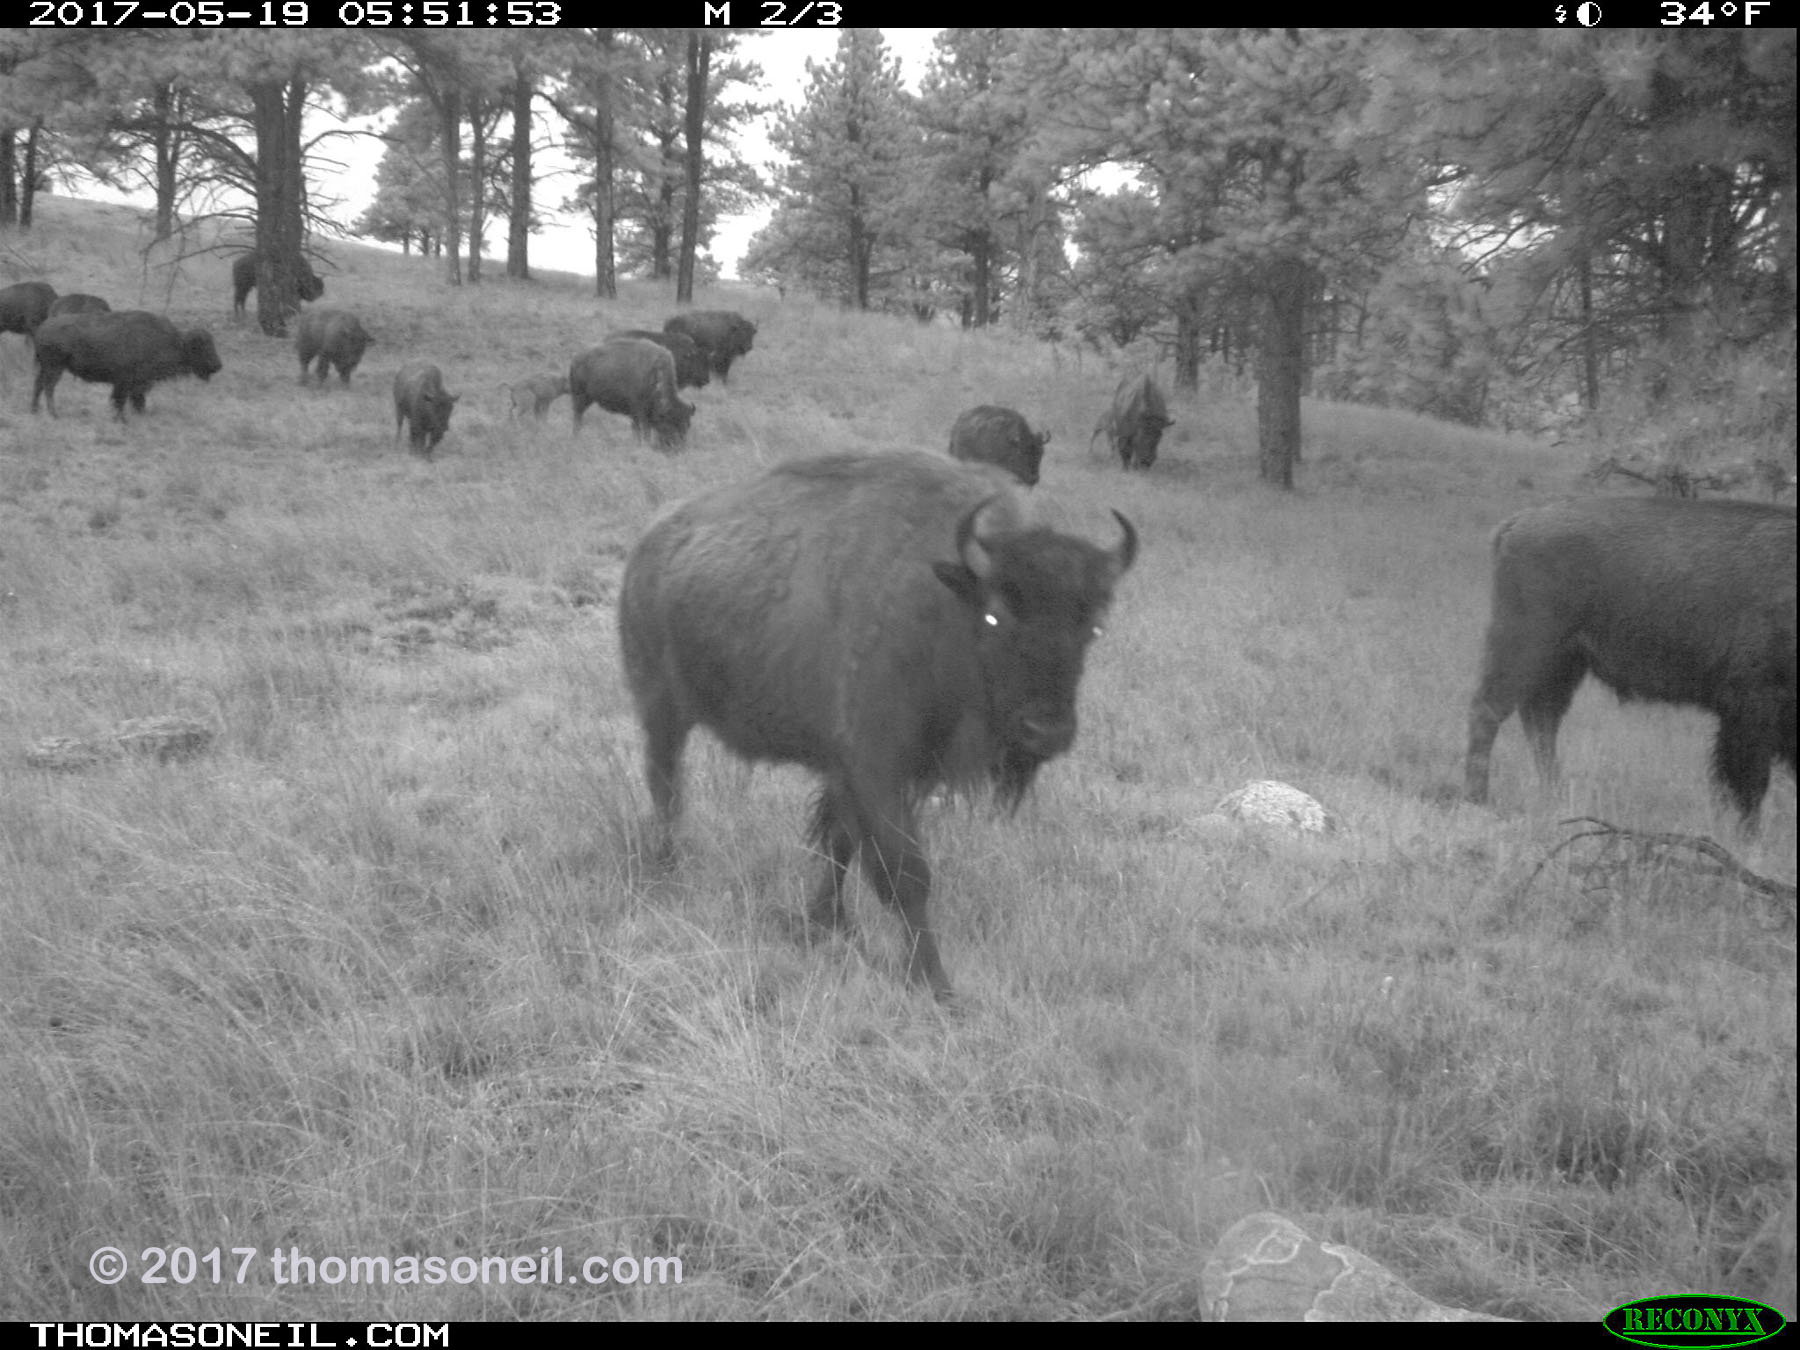 Bison passing in the predawn hours, May 19, 2017.  Click for next photo.